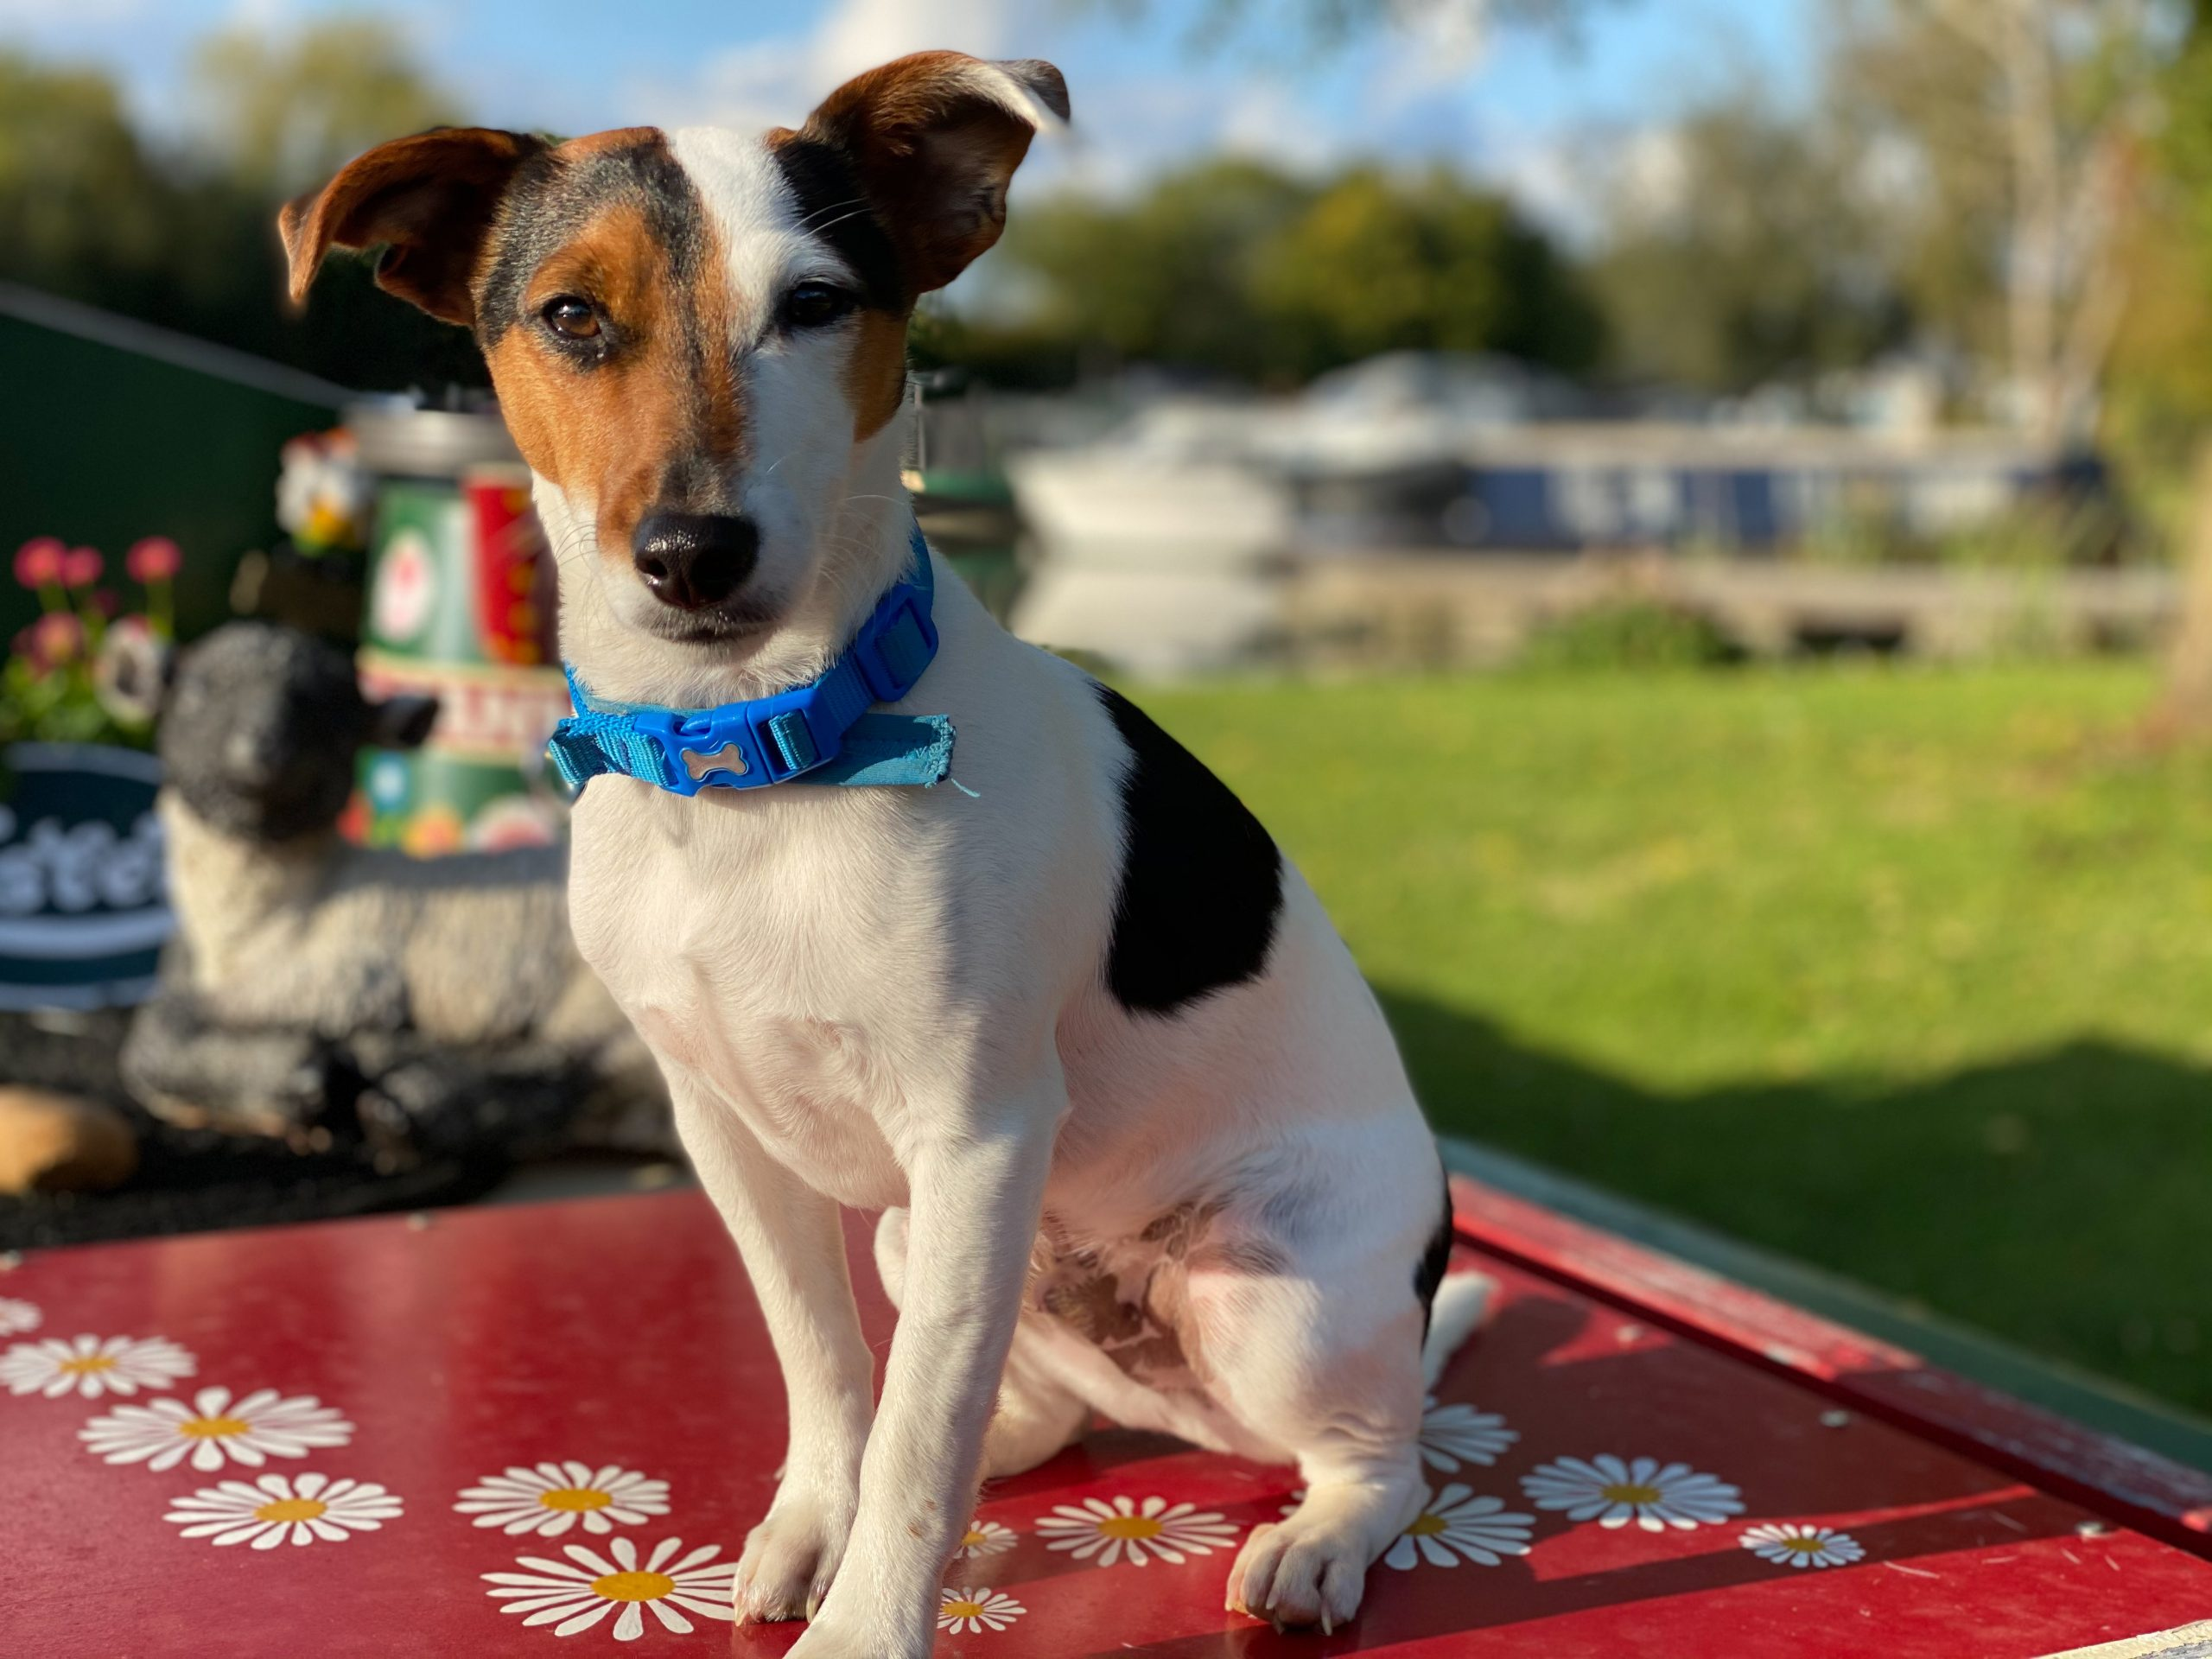 Hector the Jack Russell Terrier